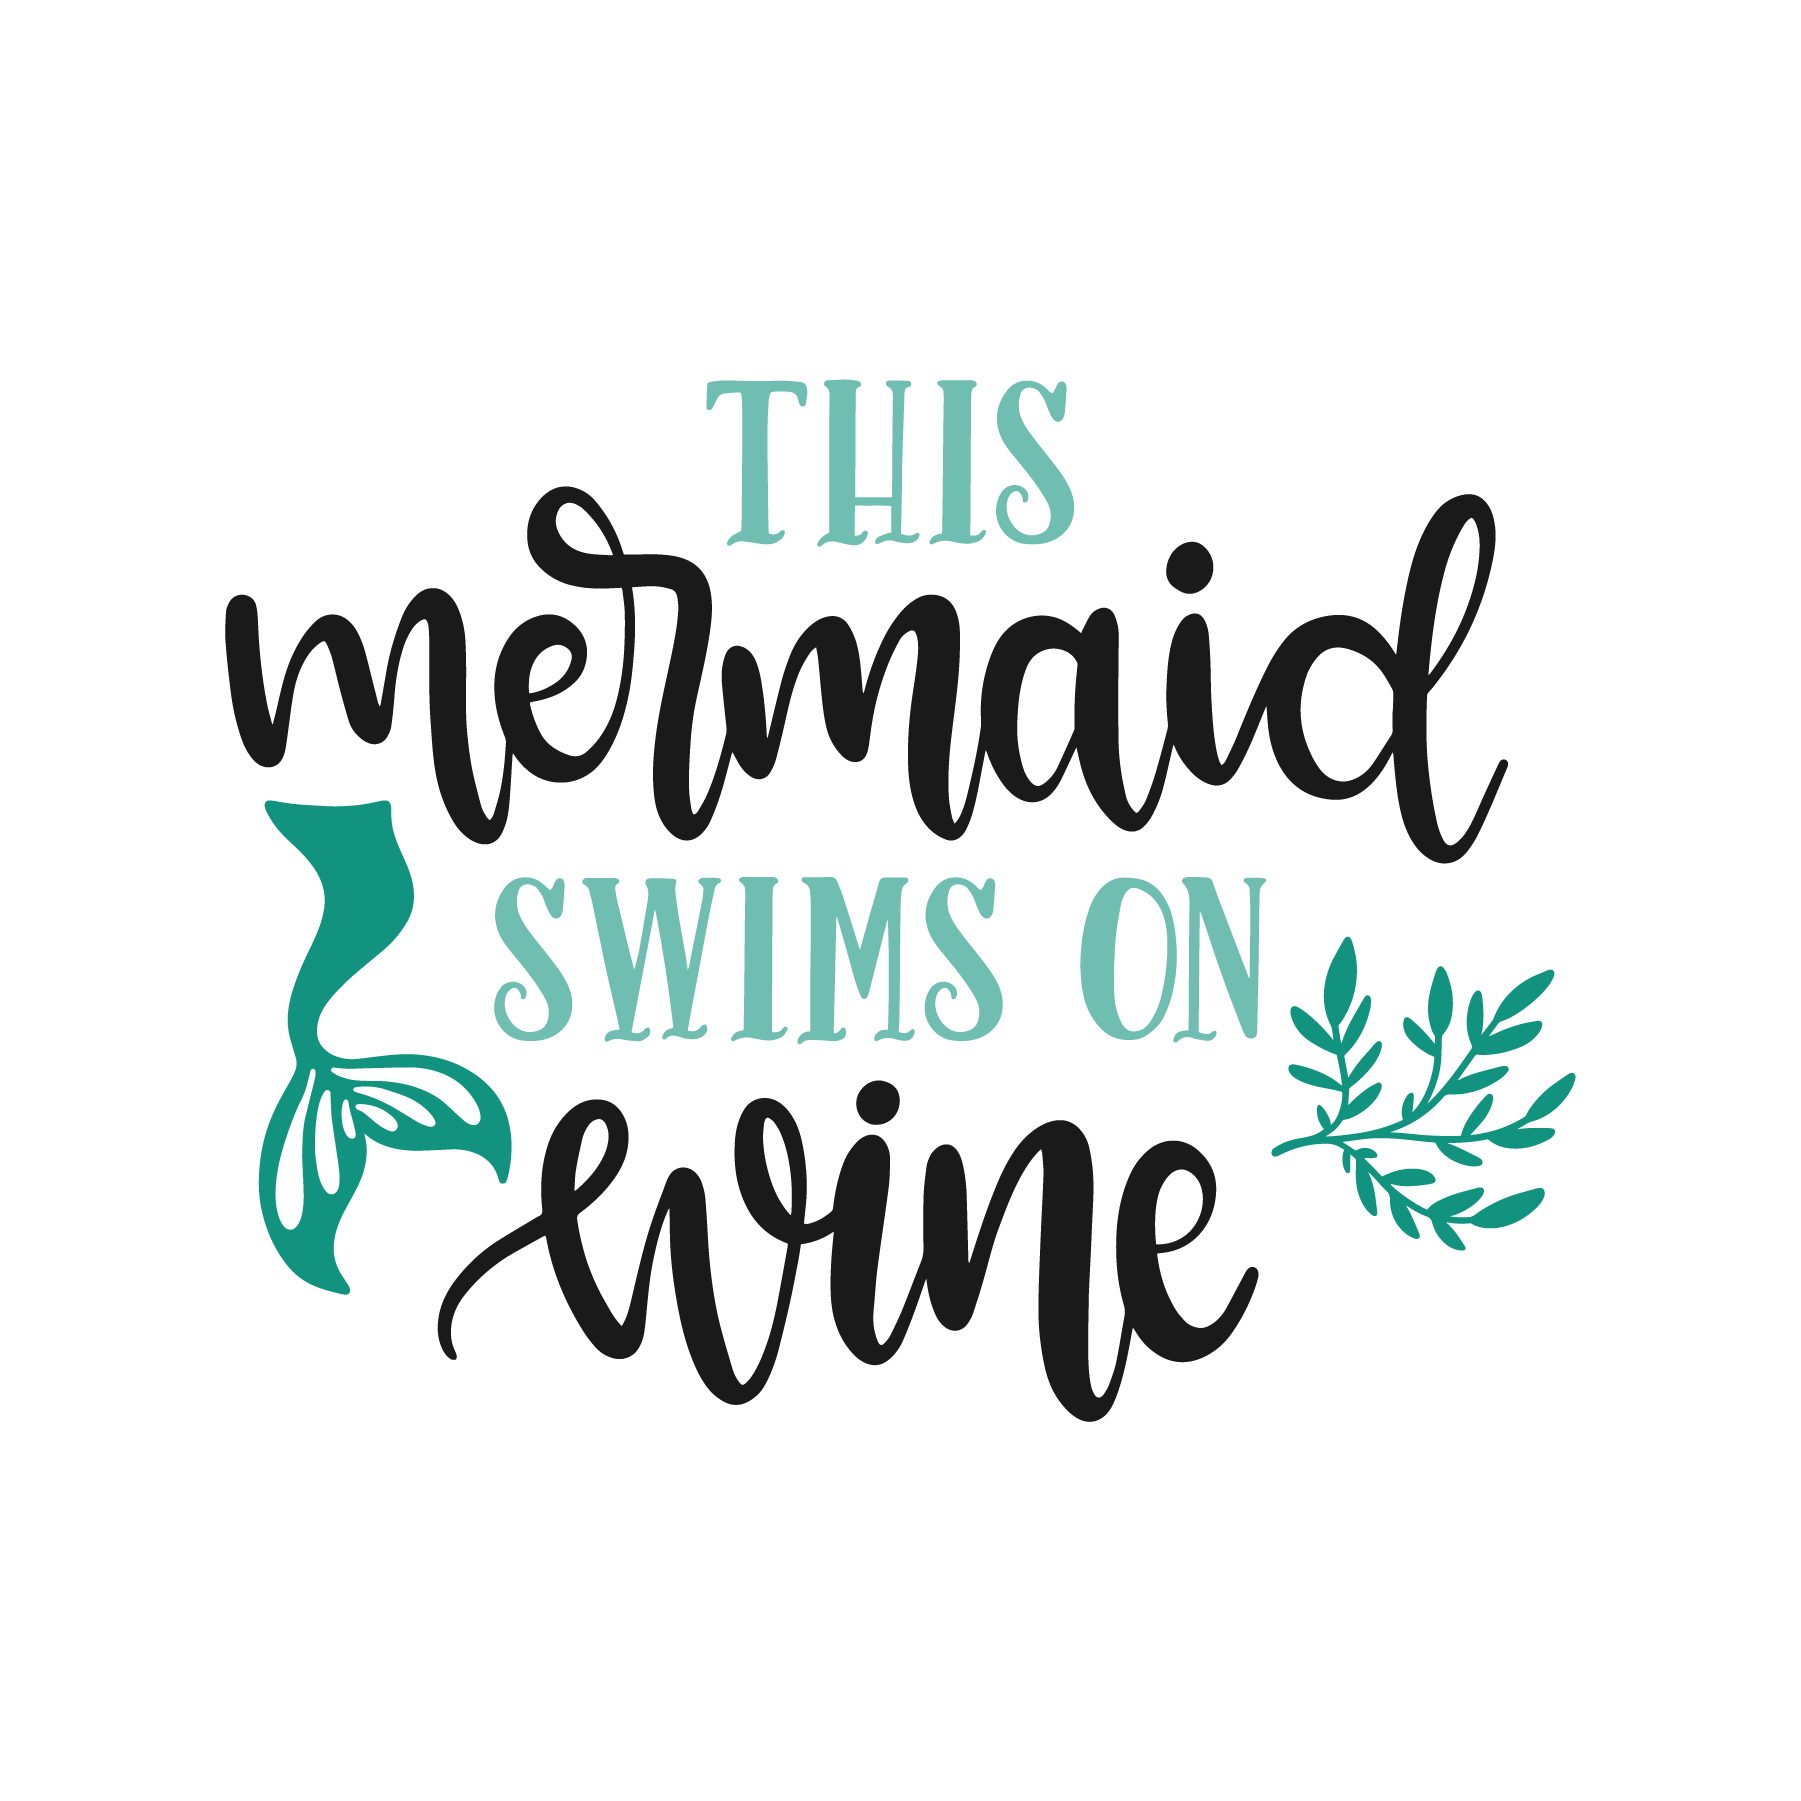 Pin by Krista on LOVE SVG Cricut projects vinyl, Mermaid